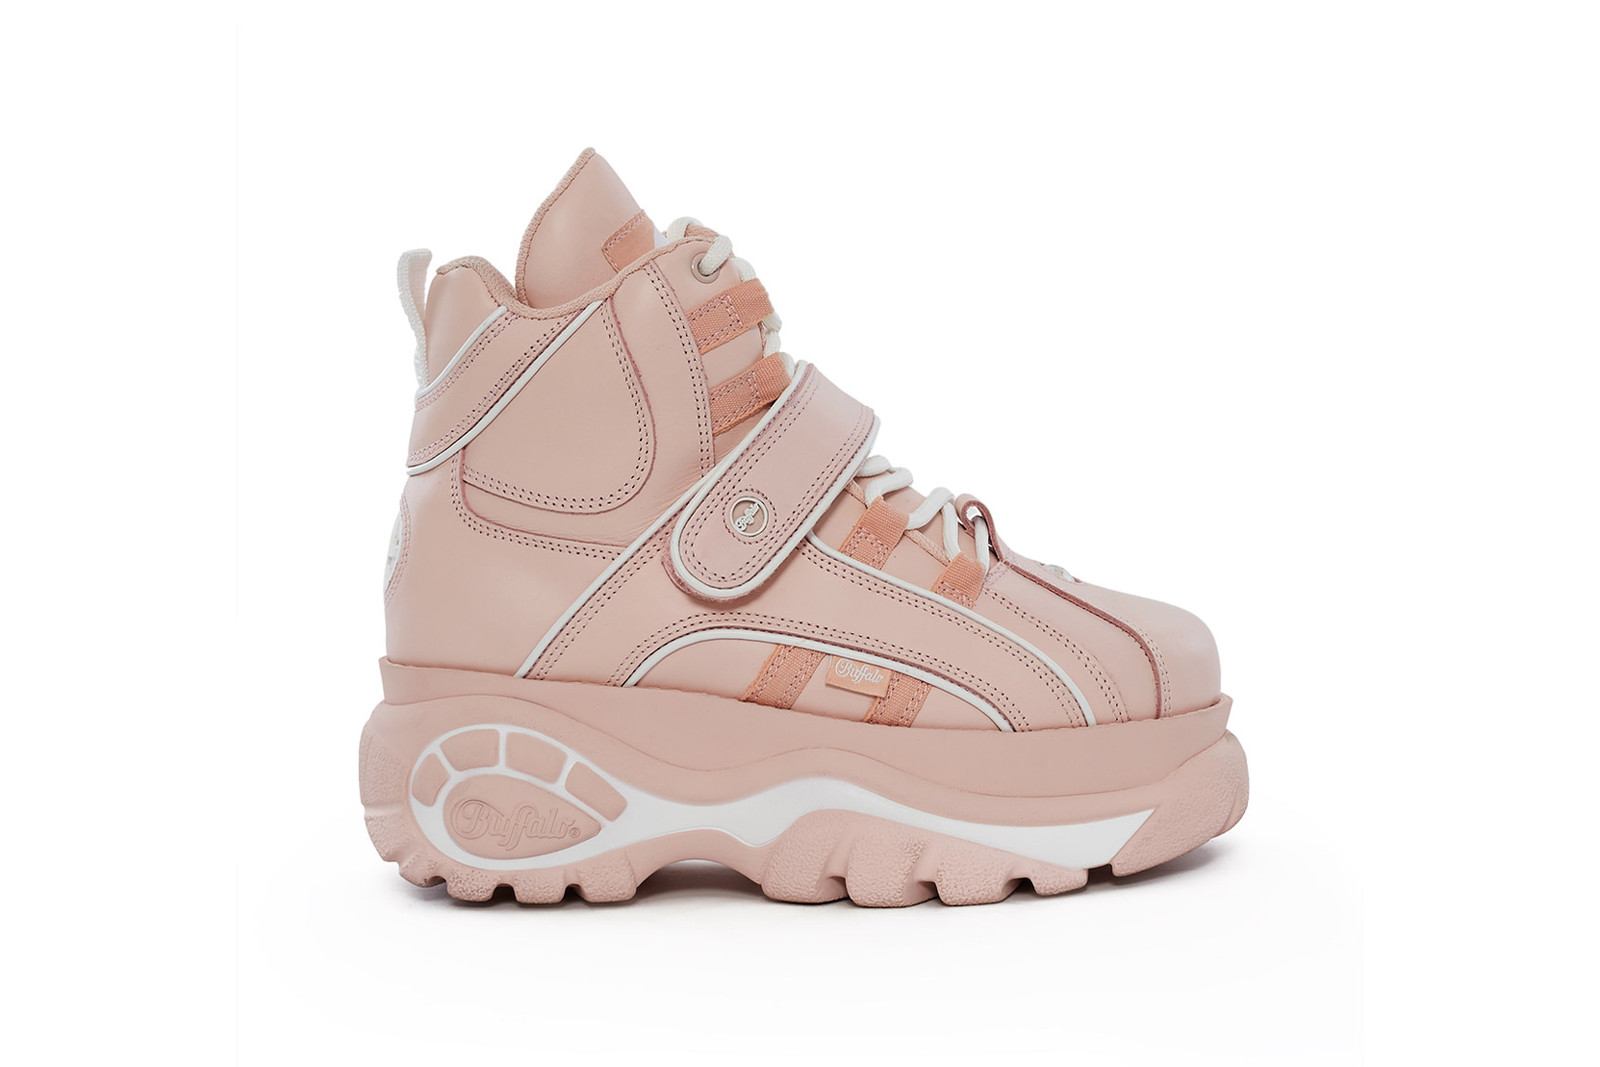 Buffalo London Opening Ceremony Platform Sneakers Low-Top High-Top Baby Pink Metallic Silver